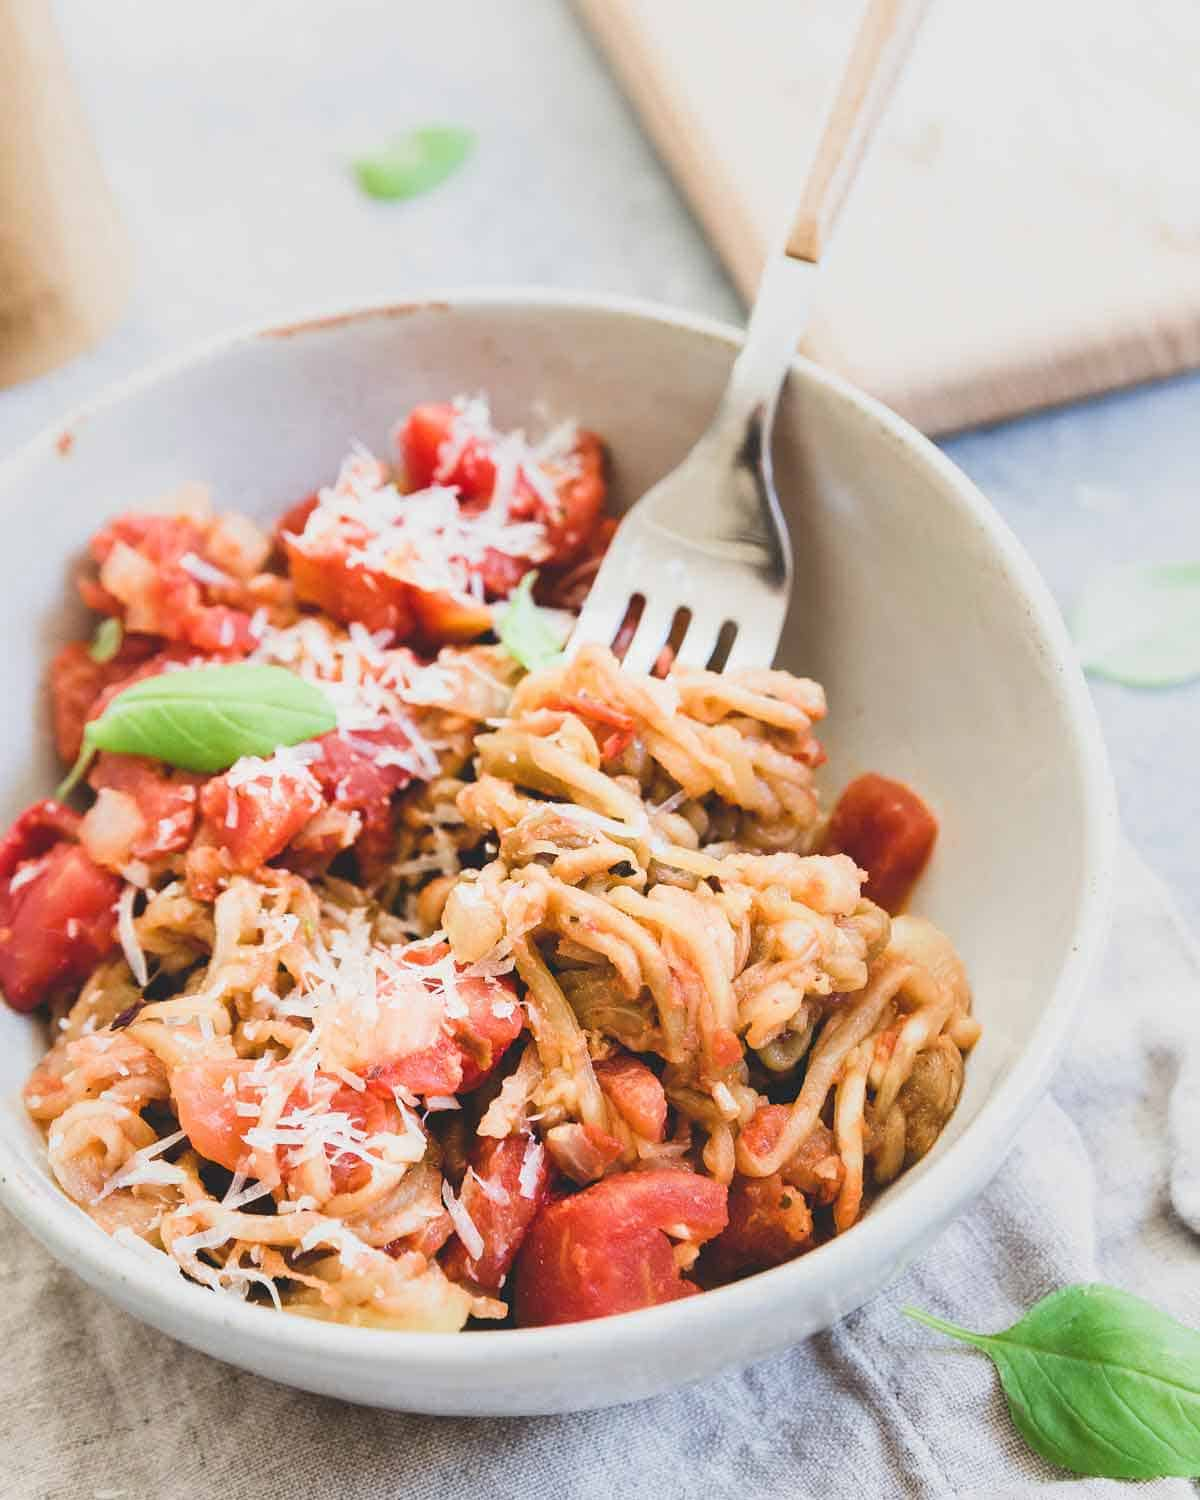 This simple eggplant noodle recipe is tossed with a quick tomato basil sauce and lots of parmesan cheese for a fresh summer meatless meal.